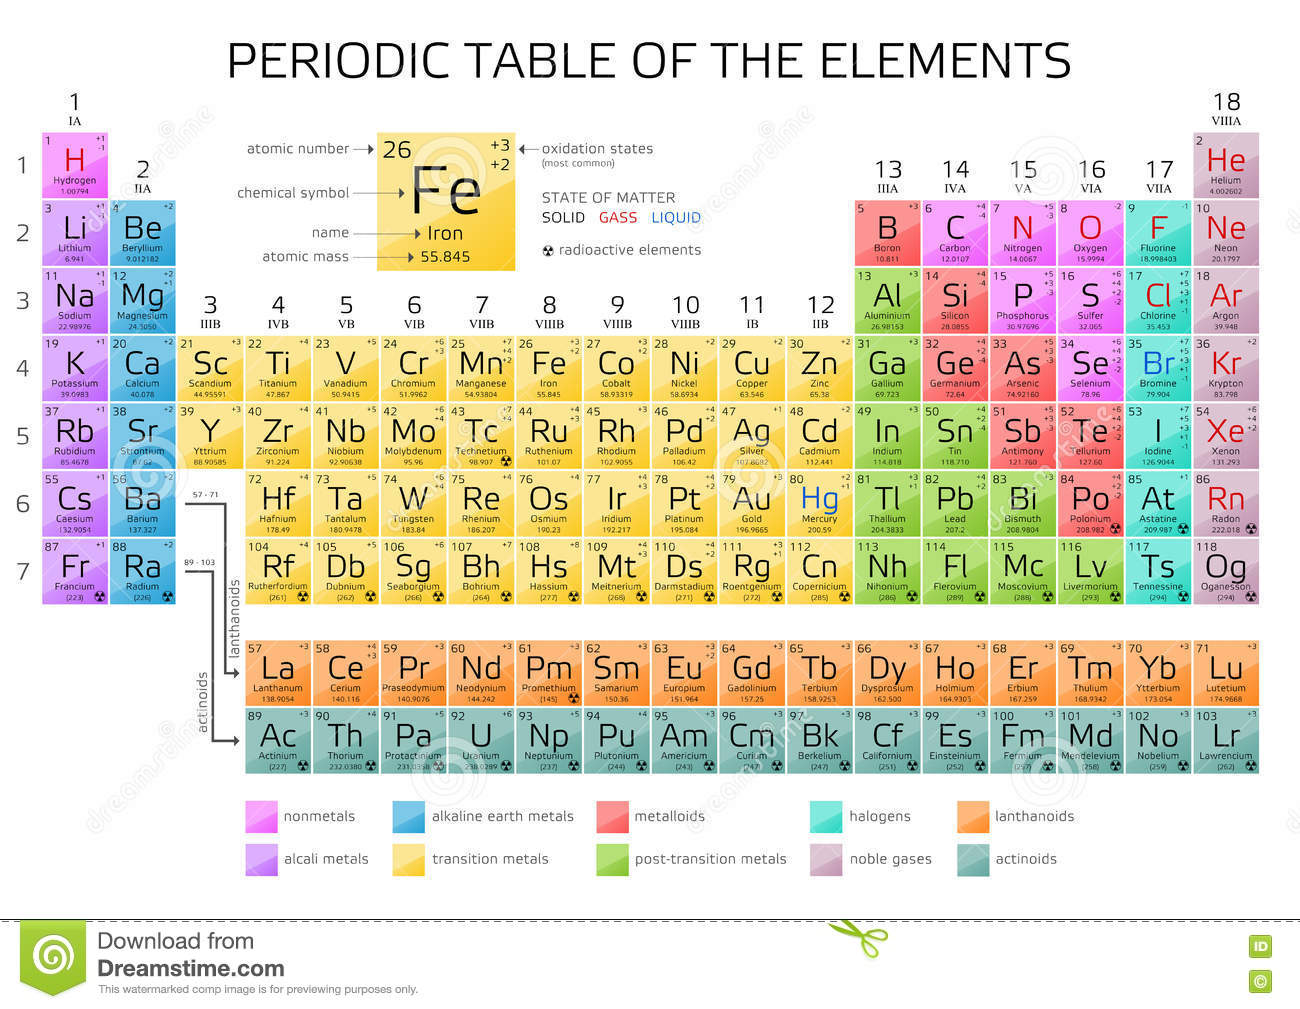 Periodic table of elements symbols images periodic table images periodic table of elements symbol the states of america map steel symbol periodic table images periodic gamestrikefo Gallery